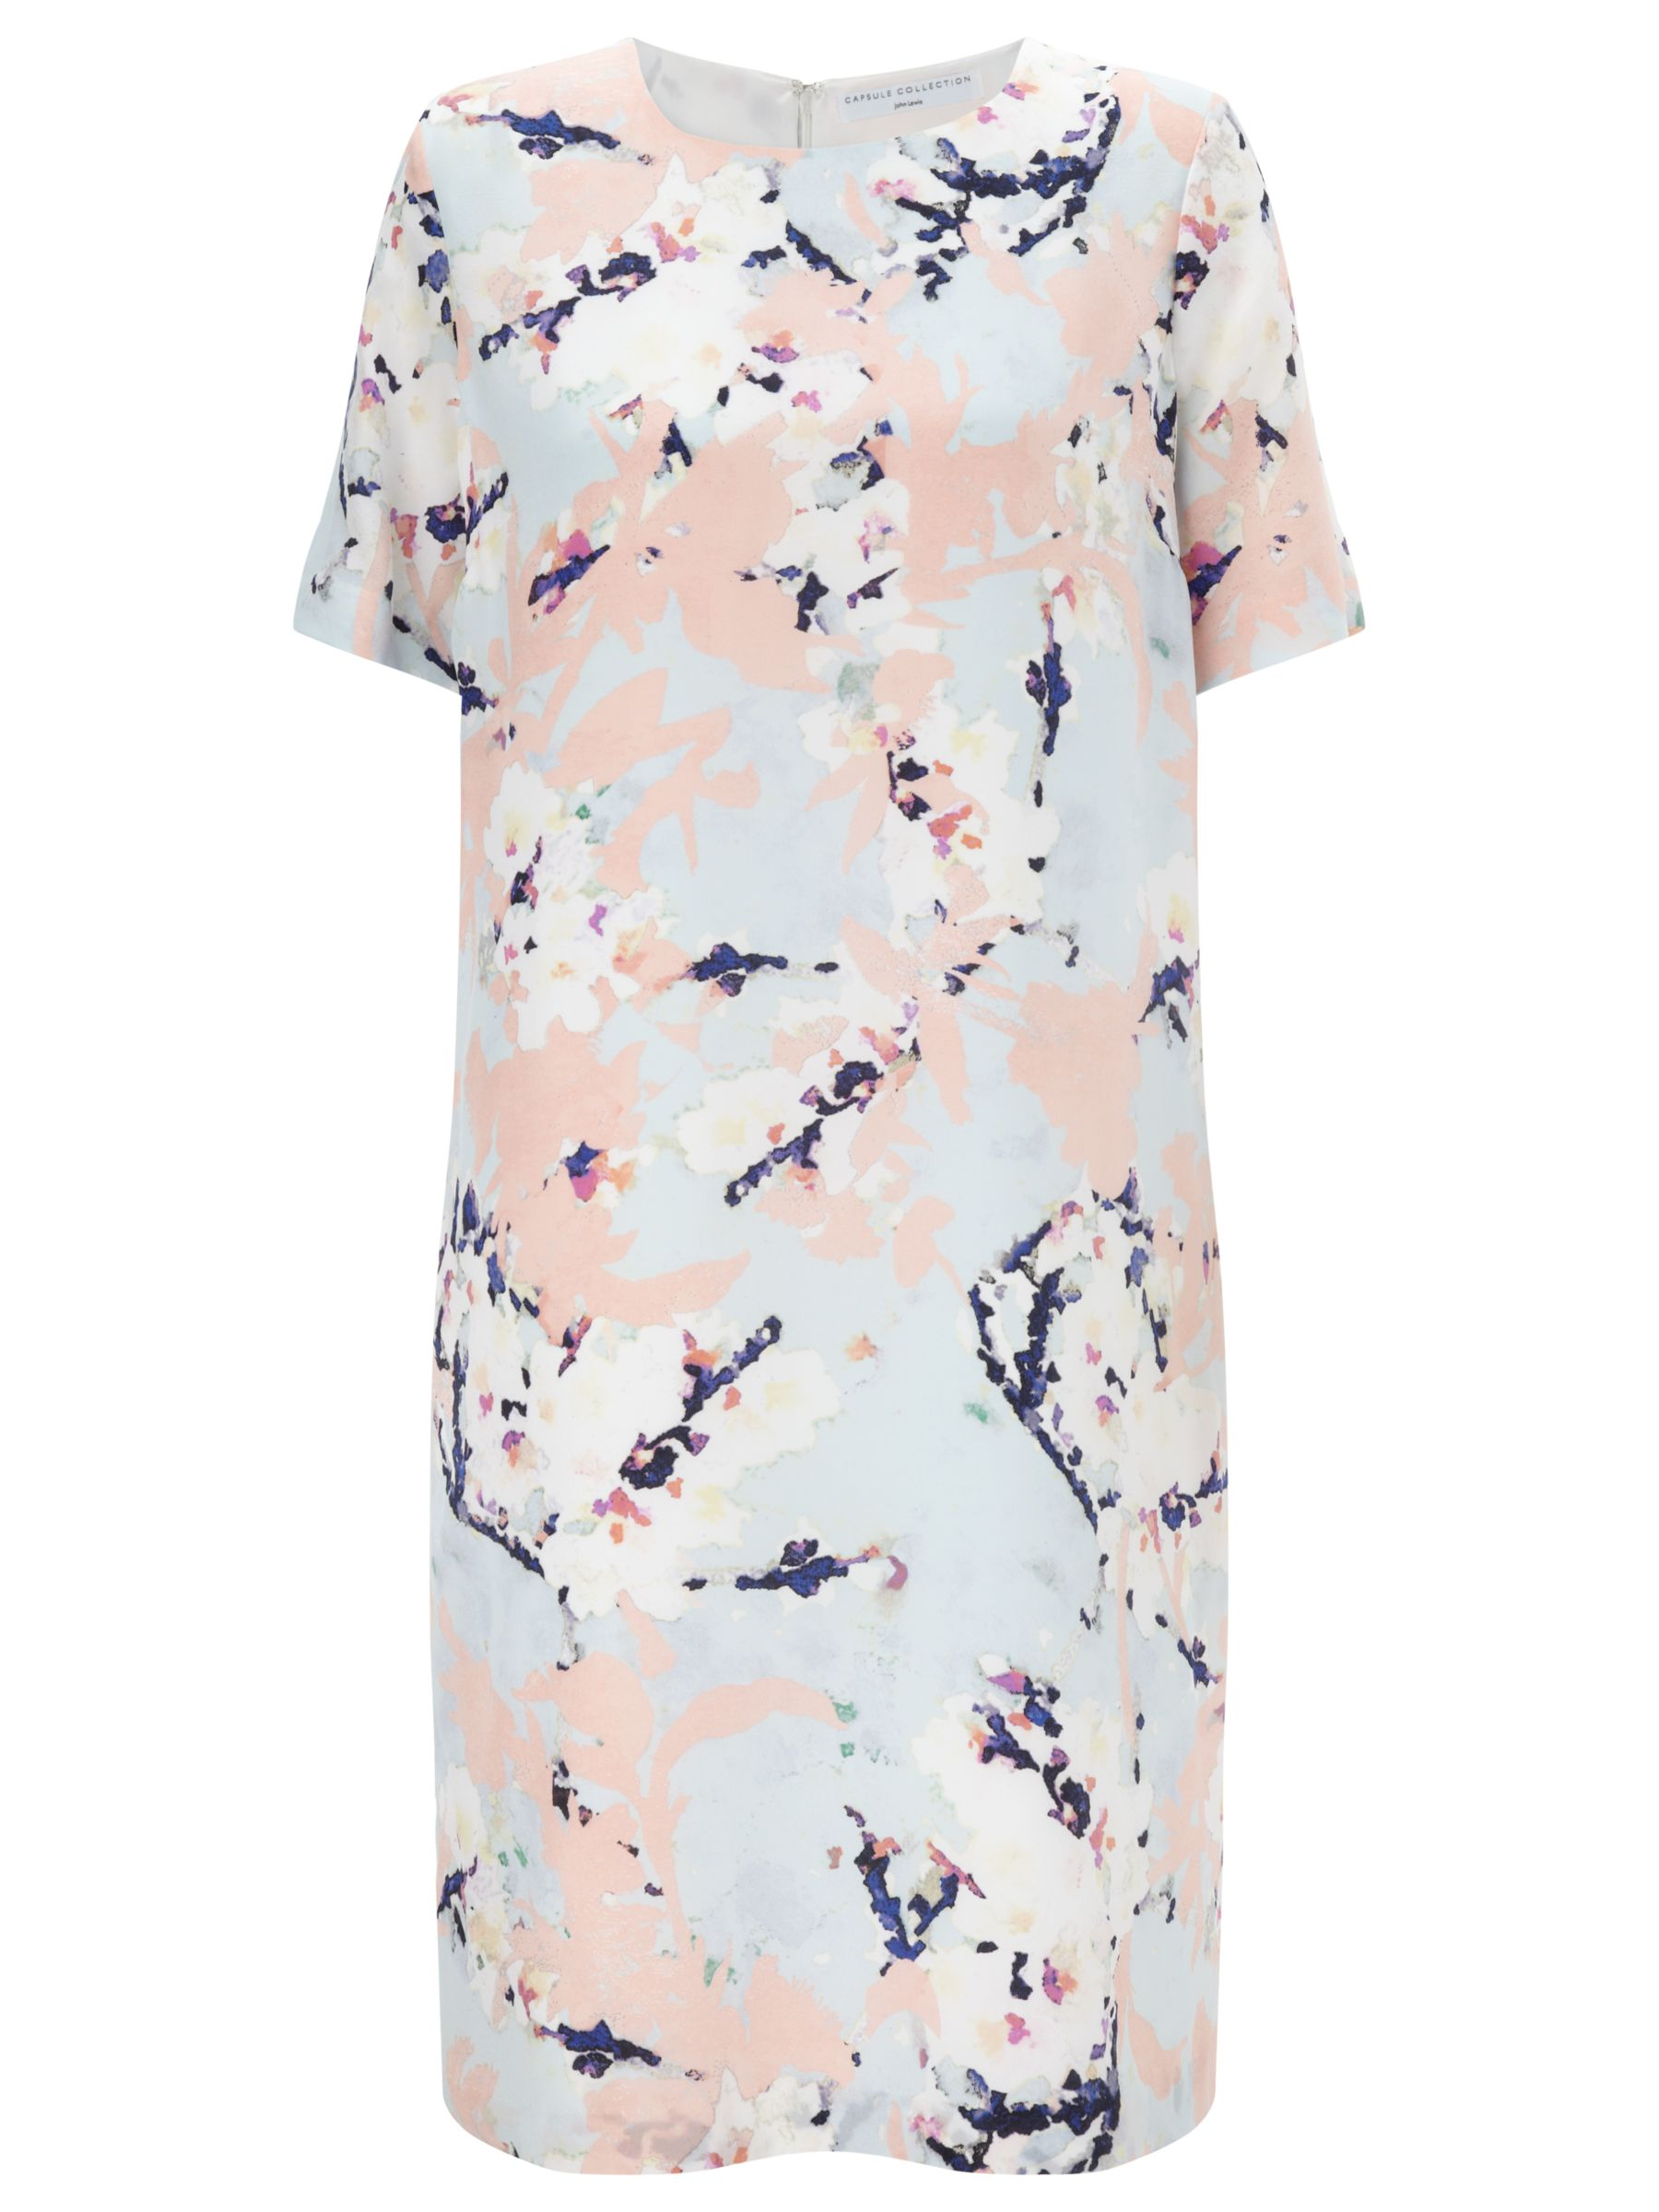 john lewis capsule collection blossom dress multi, john, lewis, capsule, collection, blossom, dress, multi, john lewis capsule collection, 10|20|12|16|14|18, women, womens dresses, gifts, wedding, wedding clothing, female guests, brands a-k, 1797406